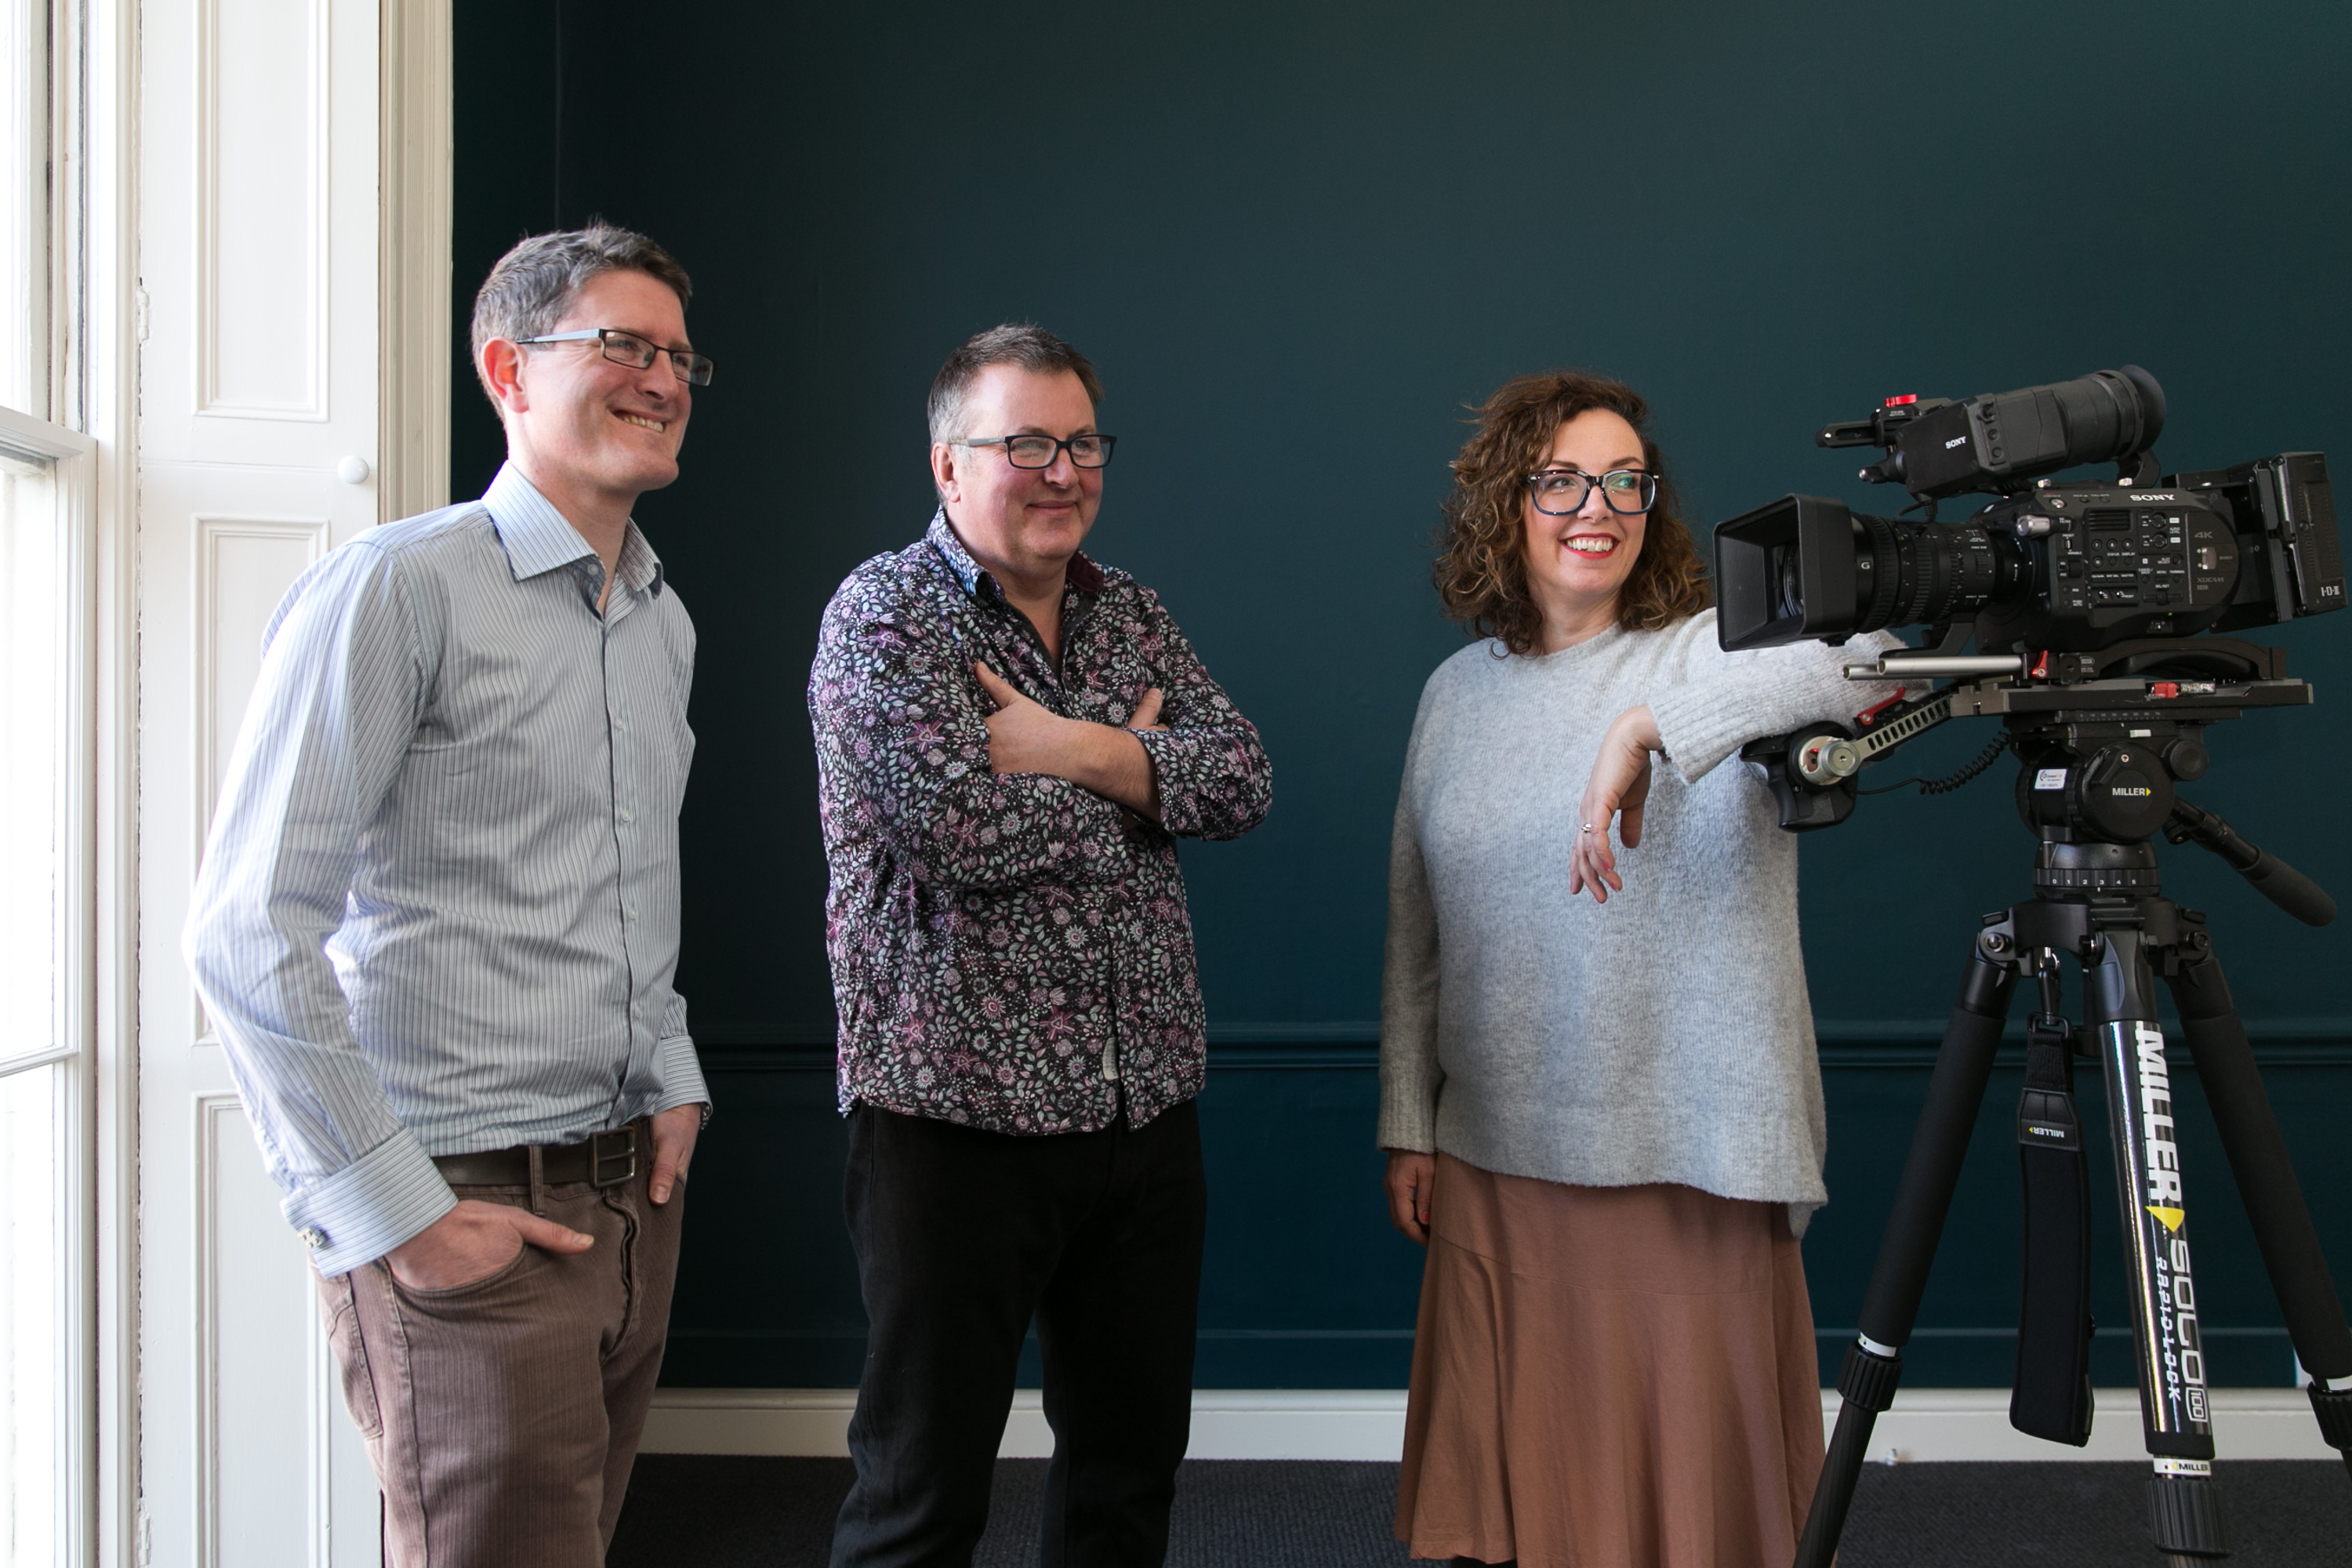 Diarmaid Mac Mathúna, Conor Moloney, Orla Doherty at launch of indiepics brand